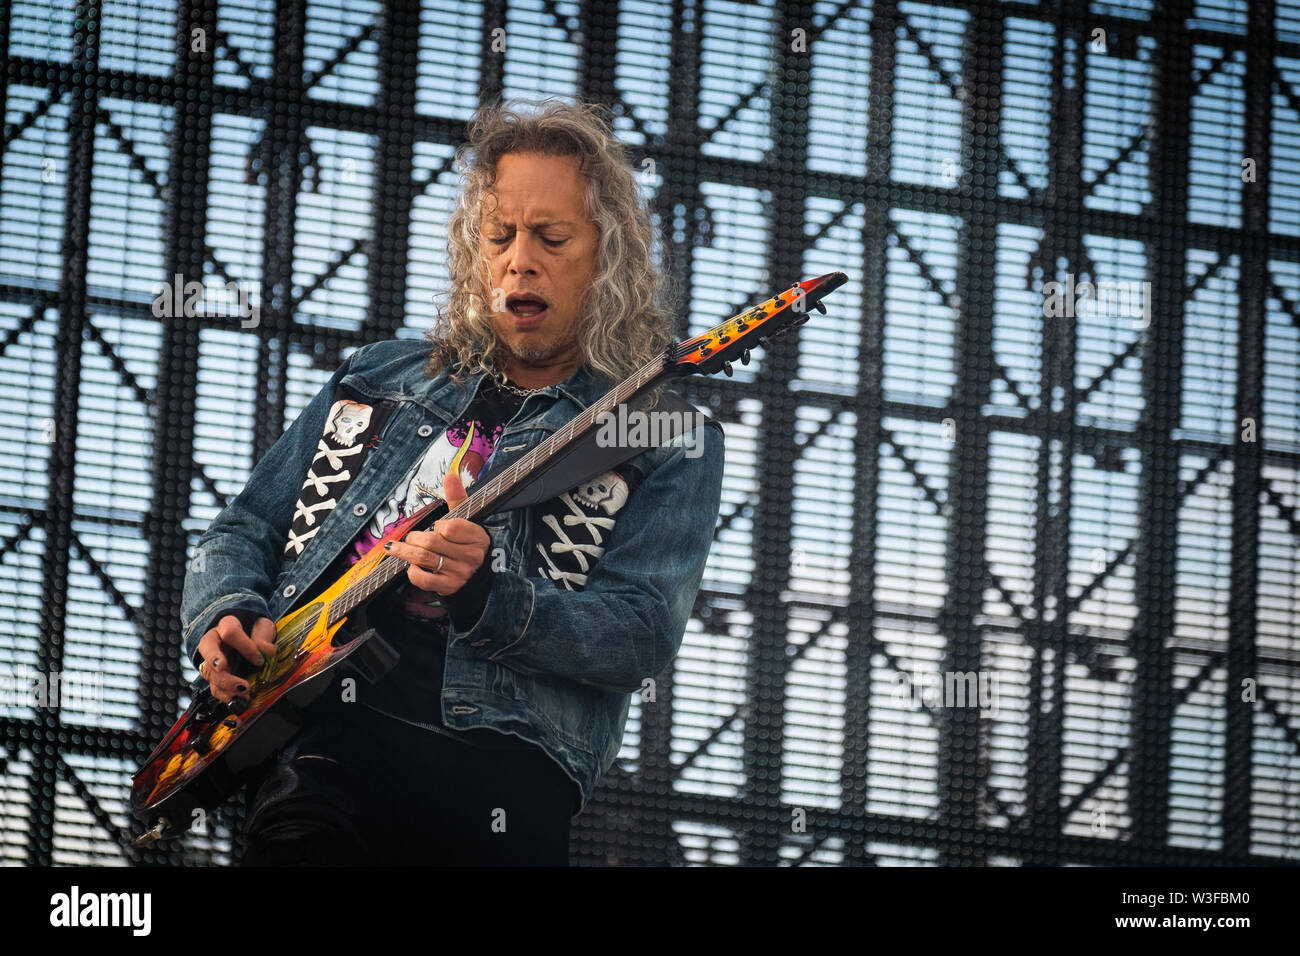 Trondheim, Norway - July 13th, 2019. The American heavy metal band Metallica performs live concerts at Granåsen Arena in Trondheim. Here guitarist Kirk Hammett is seen live on stage. (Photo credit: Gonzales Photo - Tor Atle Kleven). - Stock Image